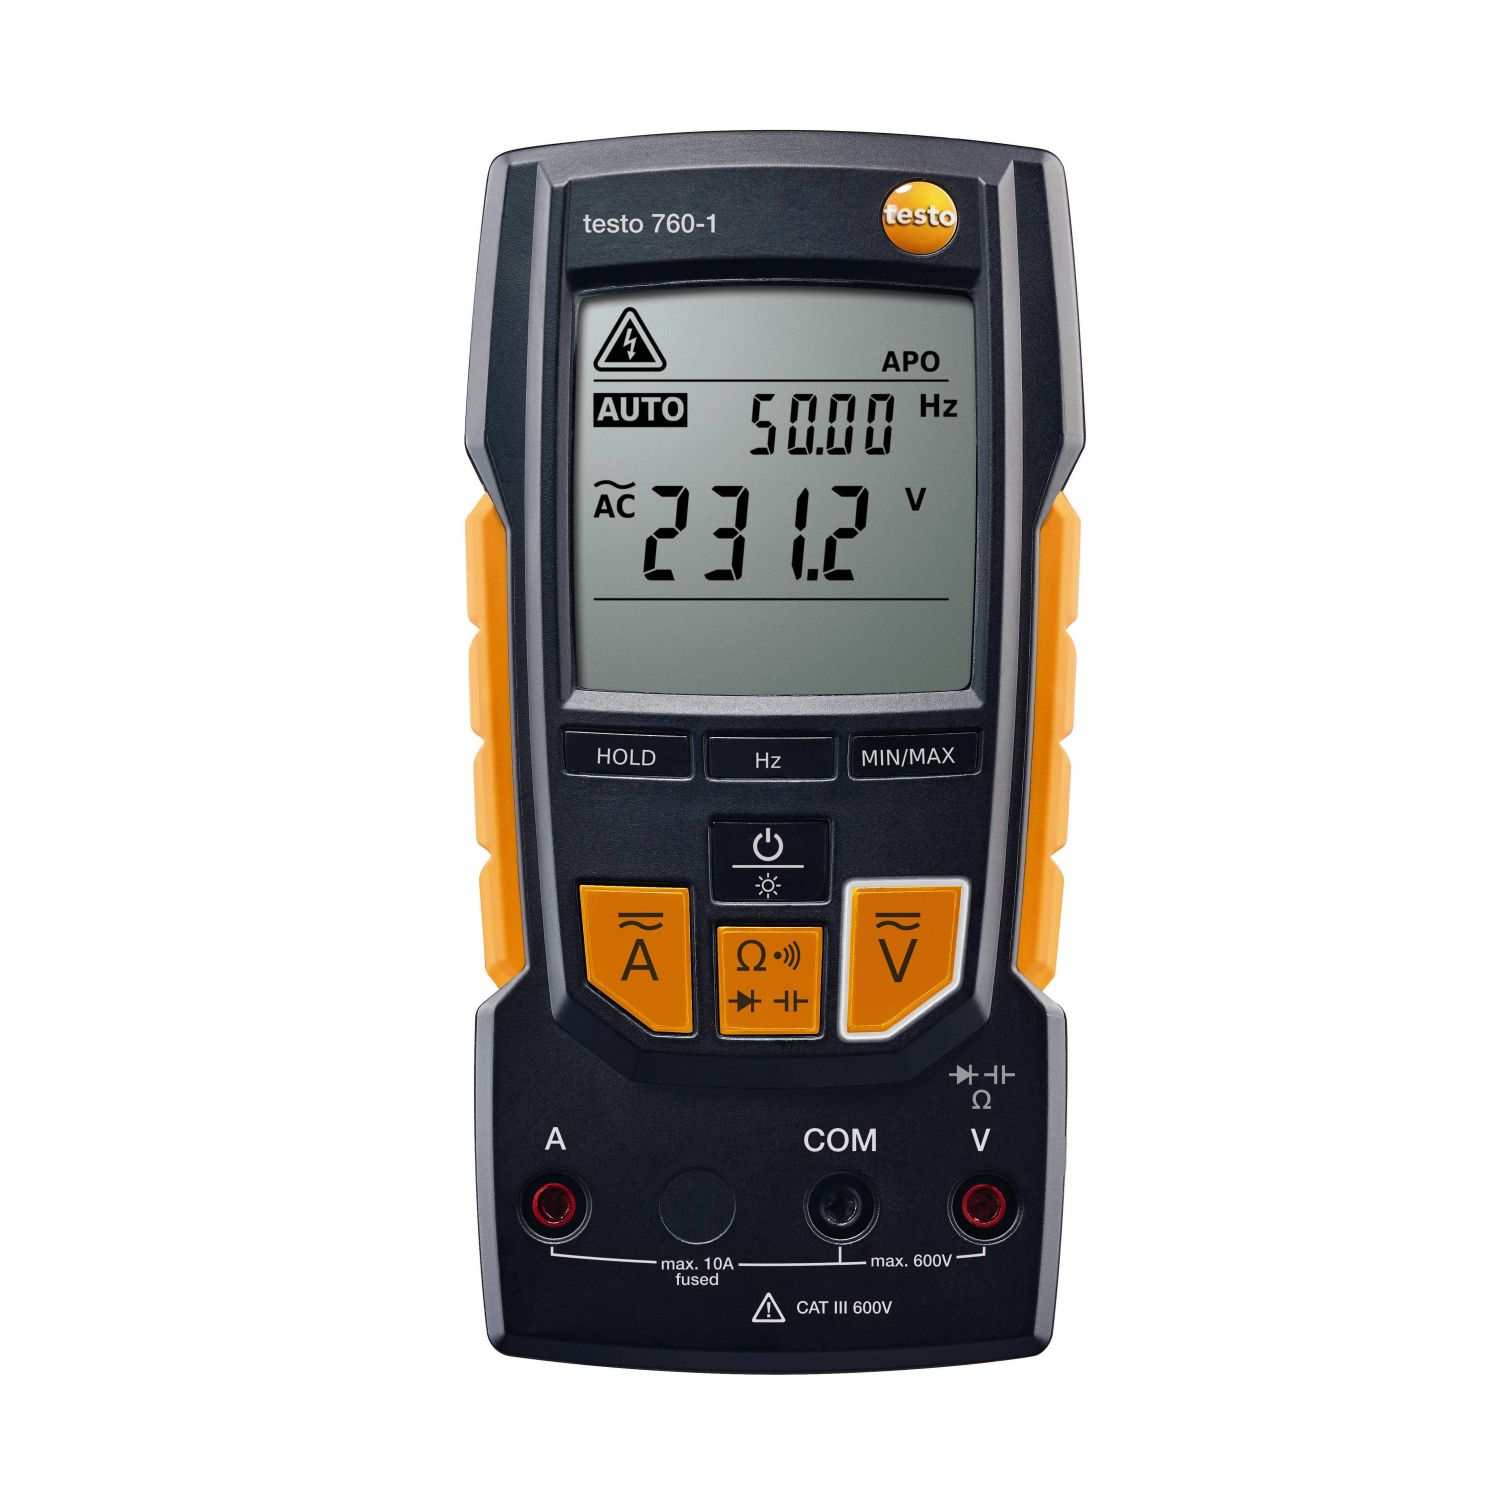 testo 760-1 Digital-Multimeter